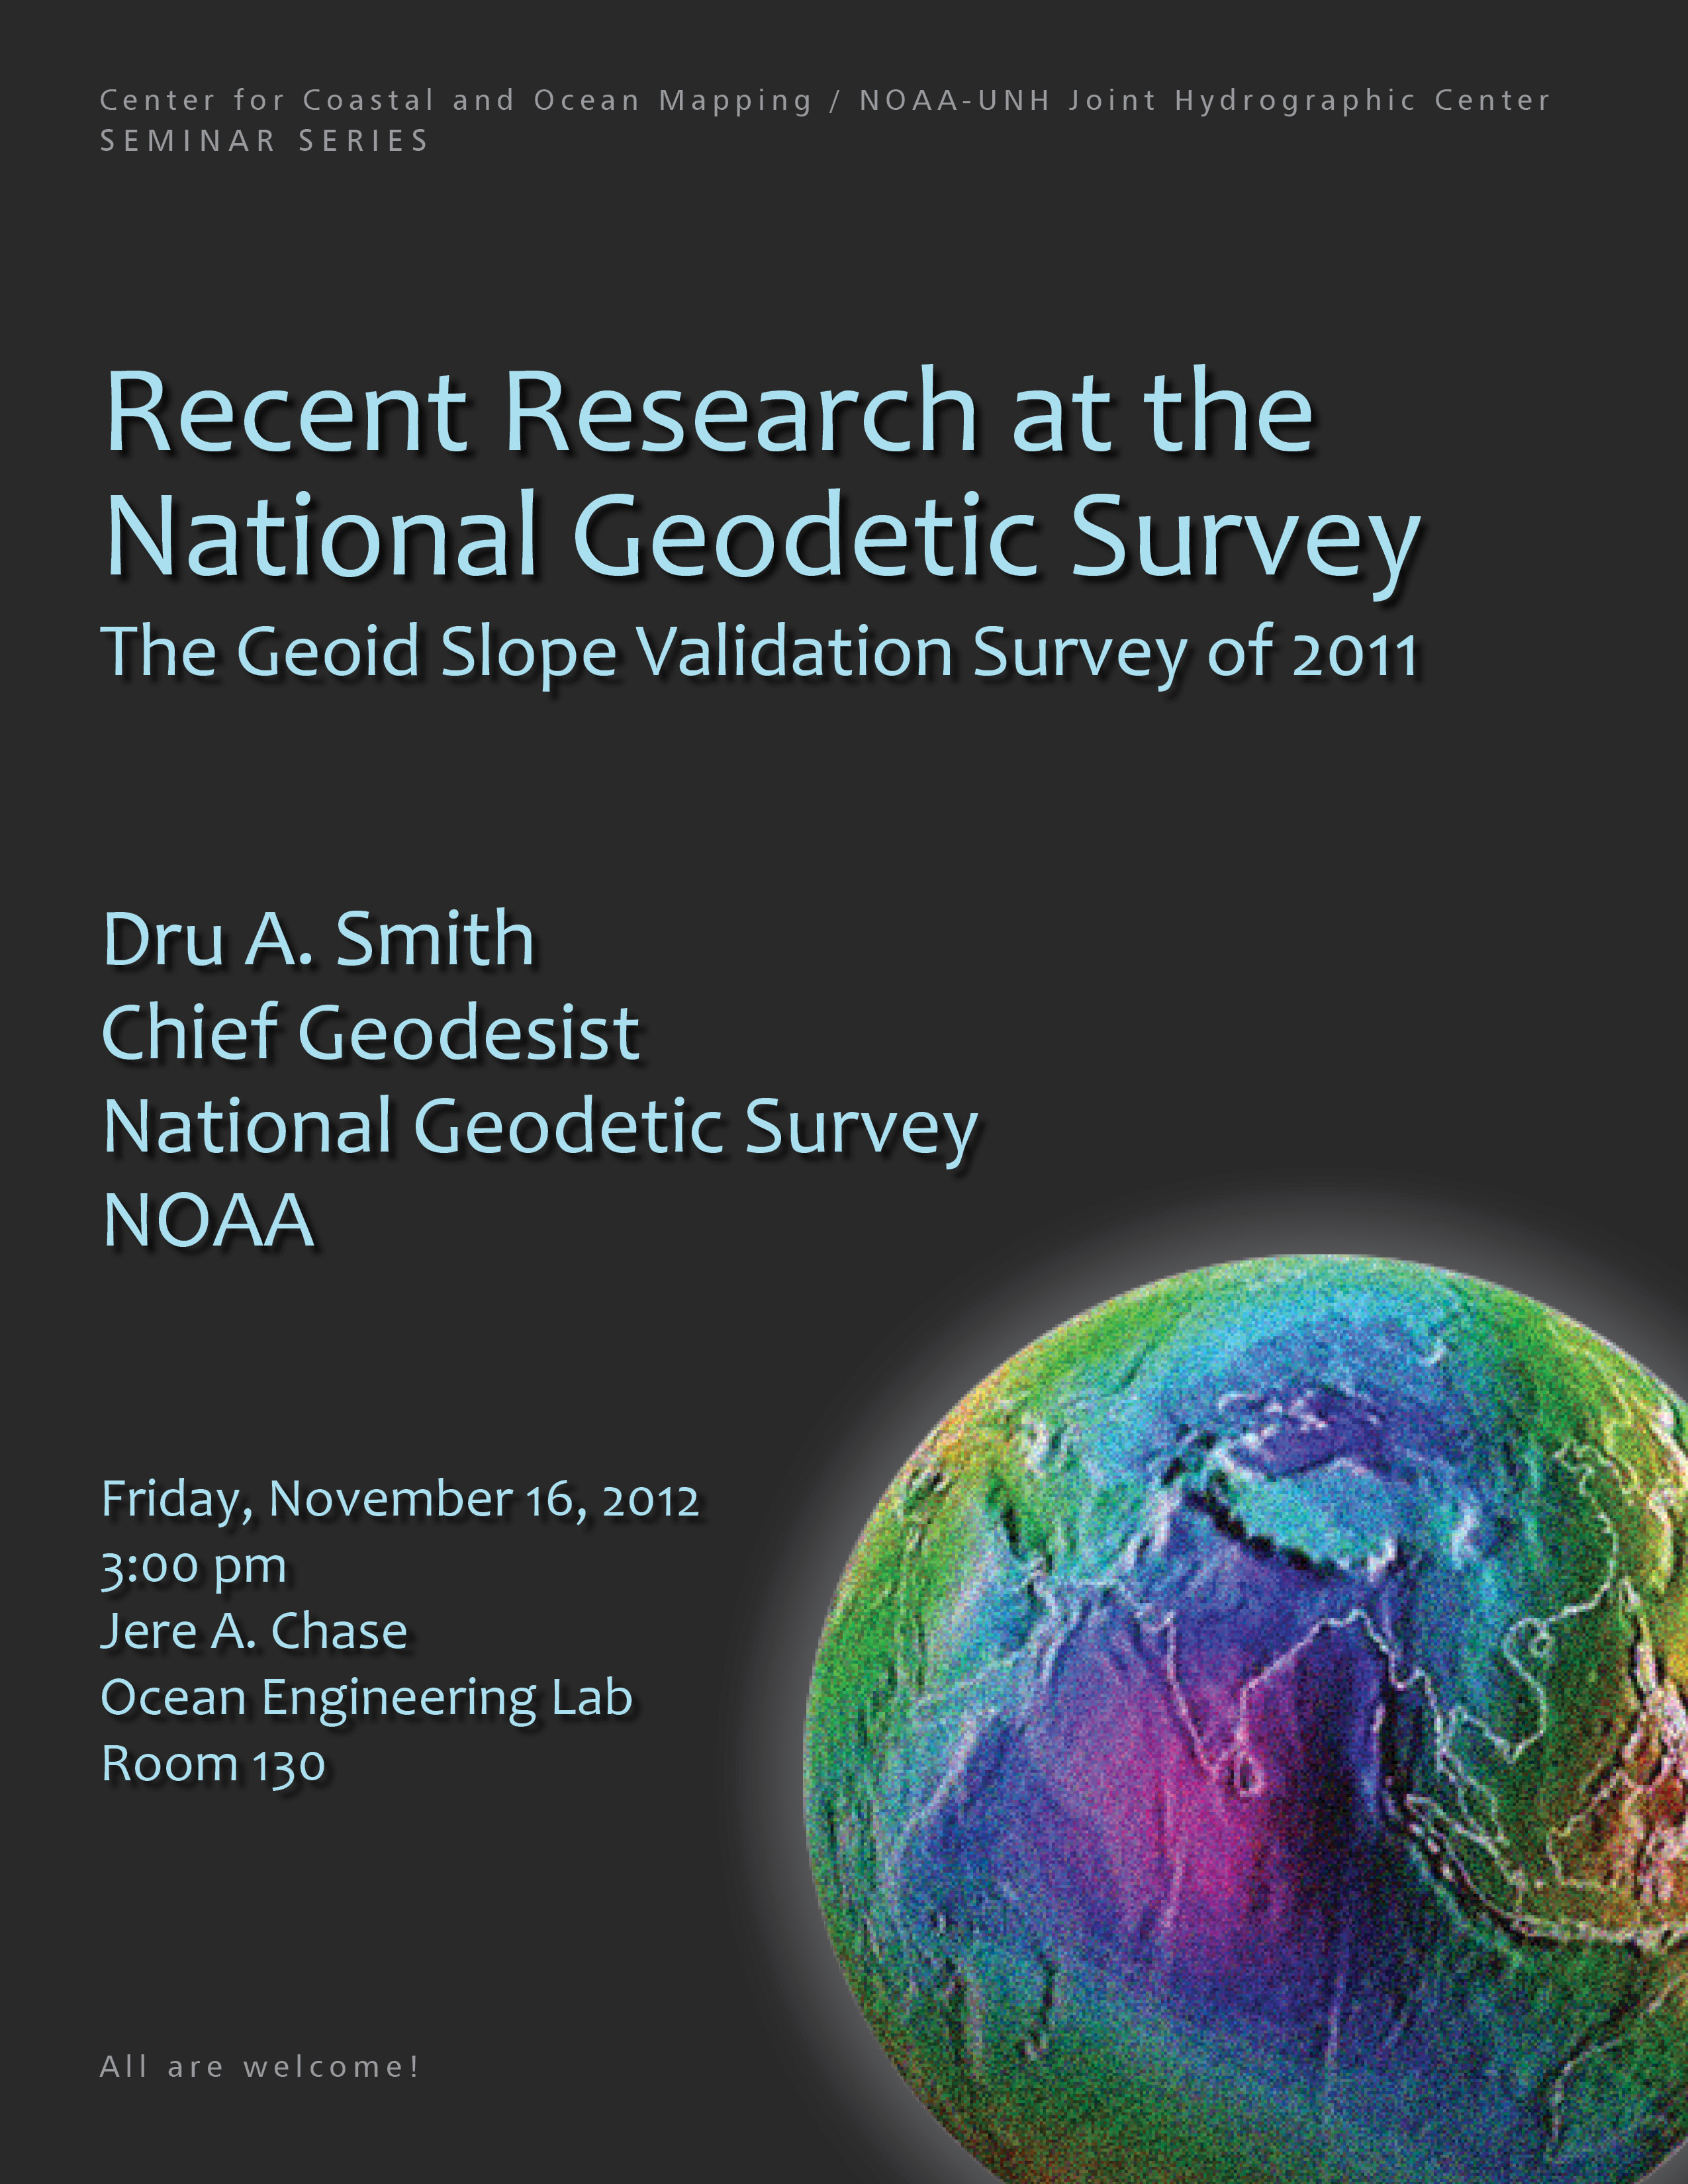 the challenges of the national geodetic survey ngs Noaa's national geodetic survey (ngs) provides the framework for all positioning activities in the nation the foundational elements of latitude, longitude, elevation, shoreline information impact a wide range of important activities.